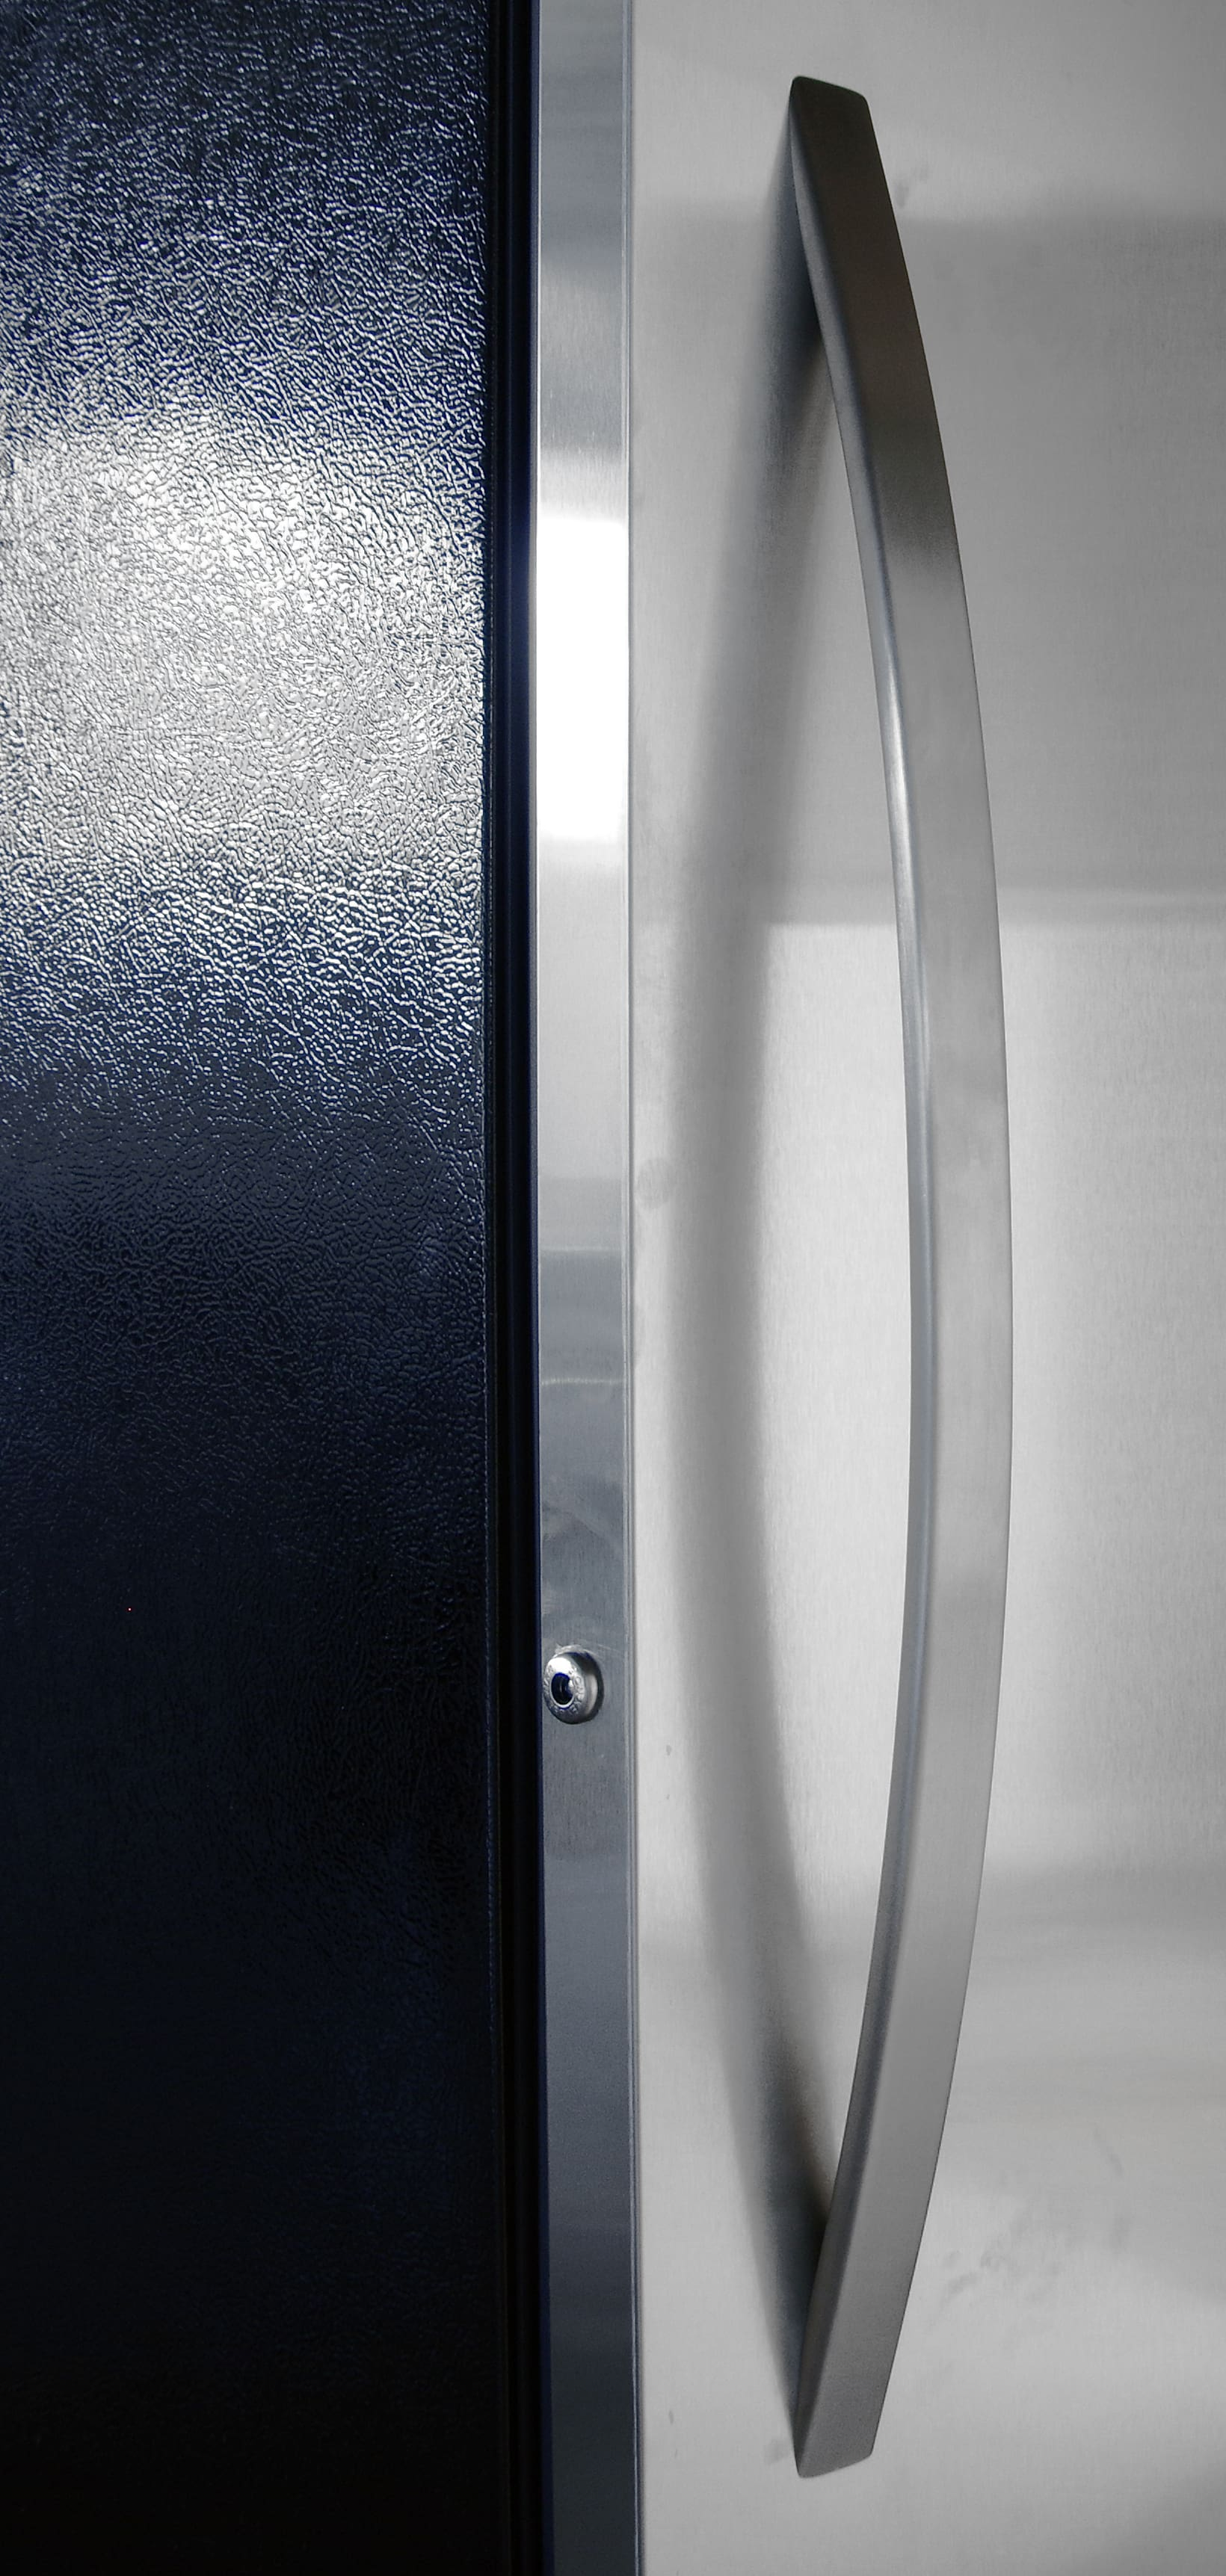 At almost two and a half feet, the Kenmore Elite 28093 has a long handle.